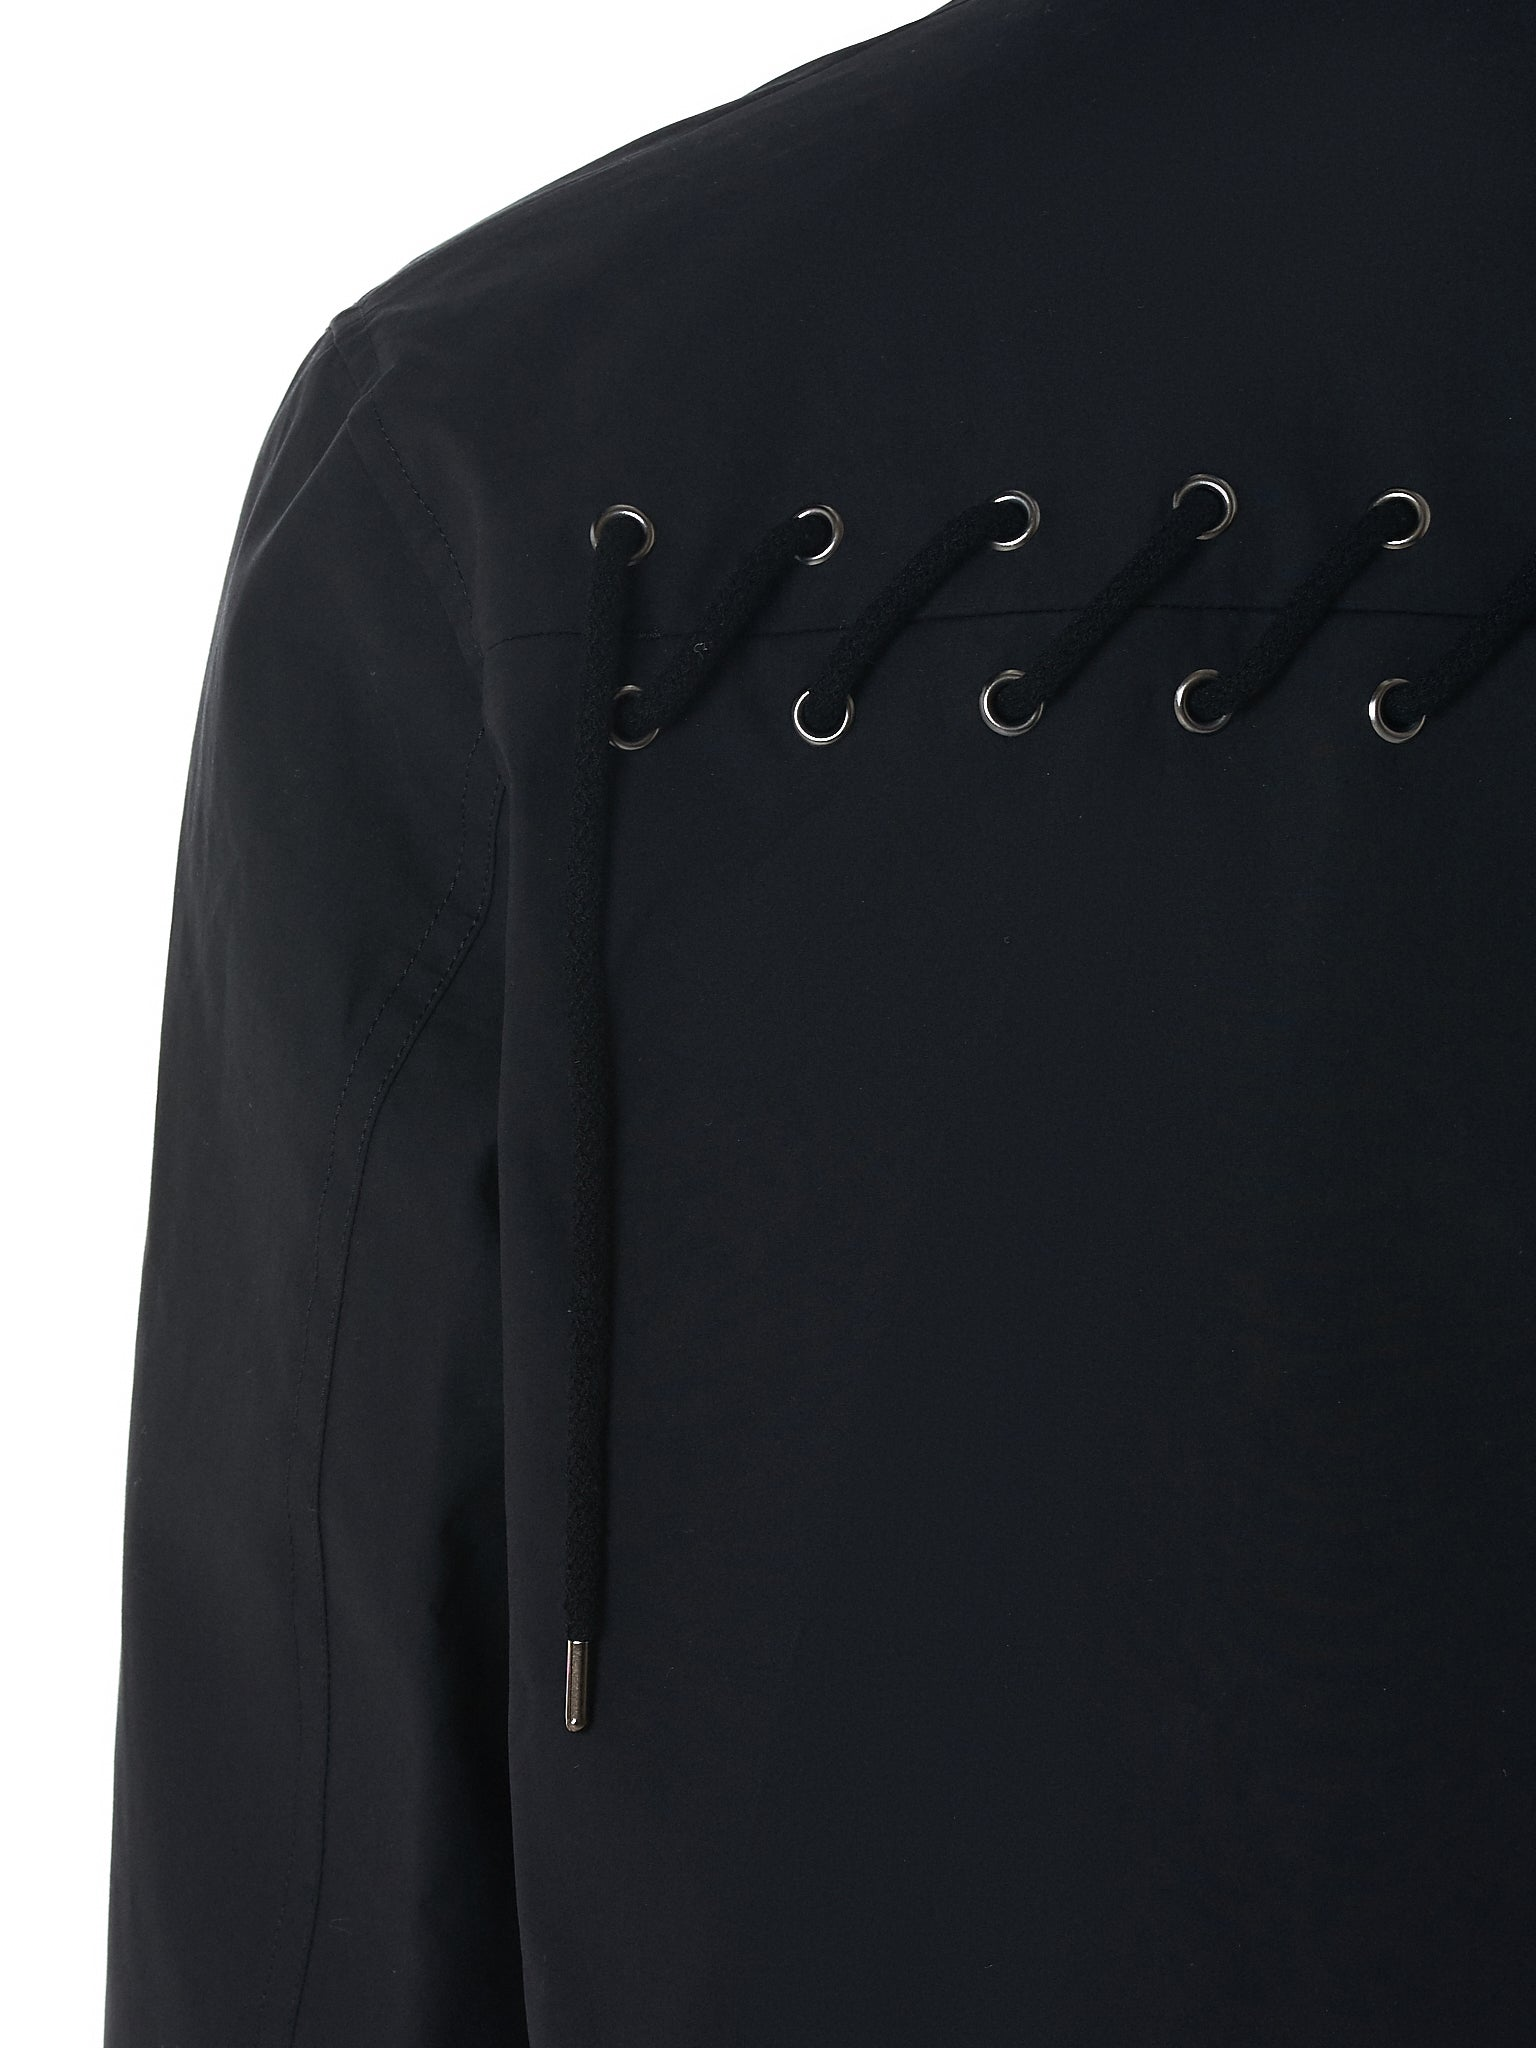 Craig Green Work Jacket - Hlorenzo Detail 3